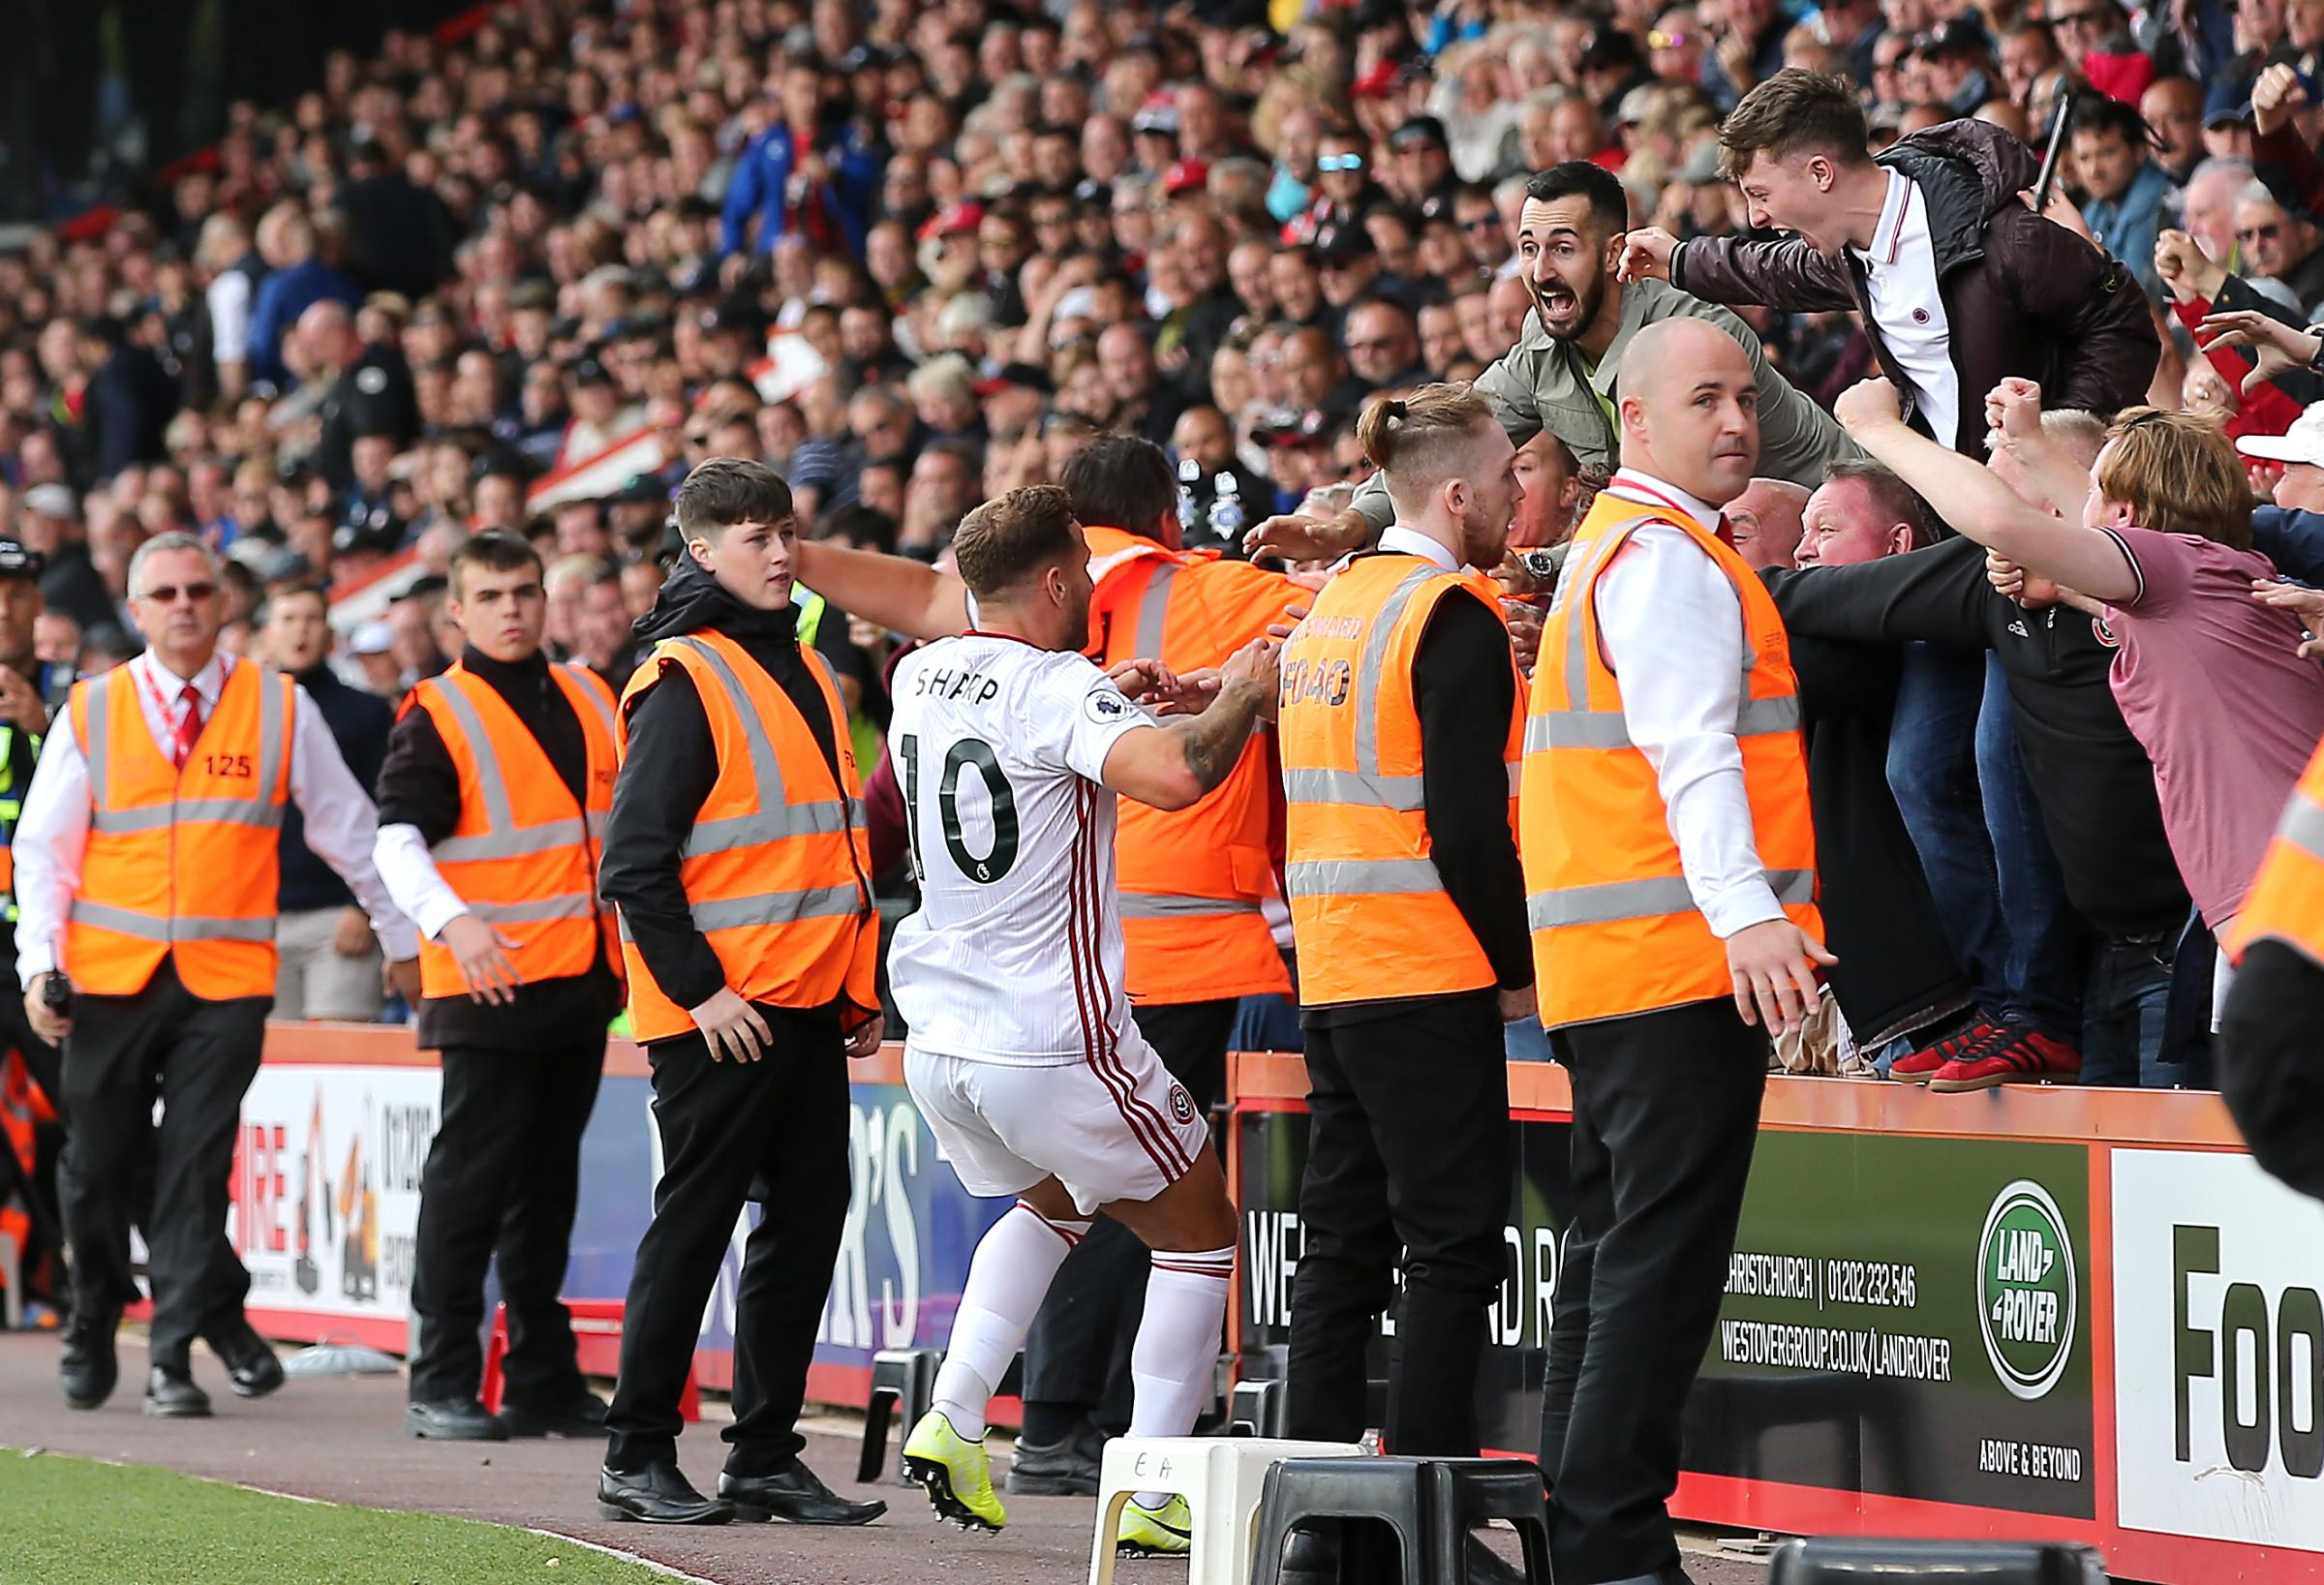 'The worst thing was my son's face, total embarrassment': Sheffield United fans in court after celebrations spill over advertising boards in draw with Cherries